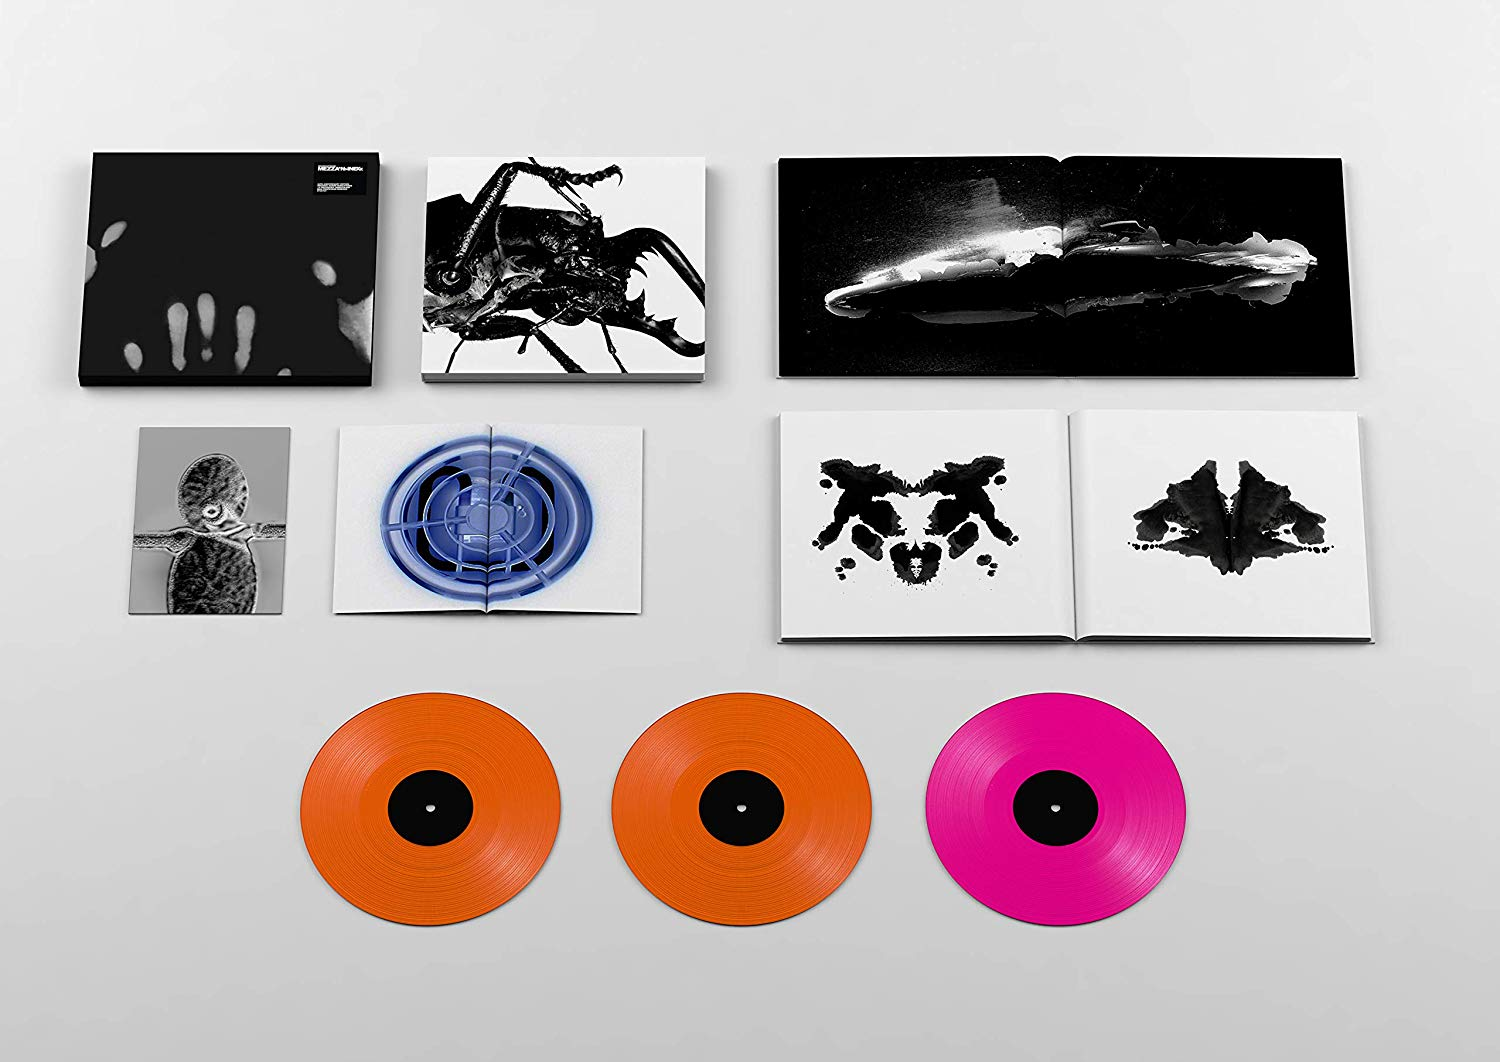 Massive Attack - Mezzanine XX [Super Deluxe Box Set]